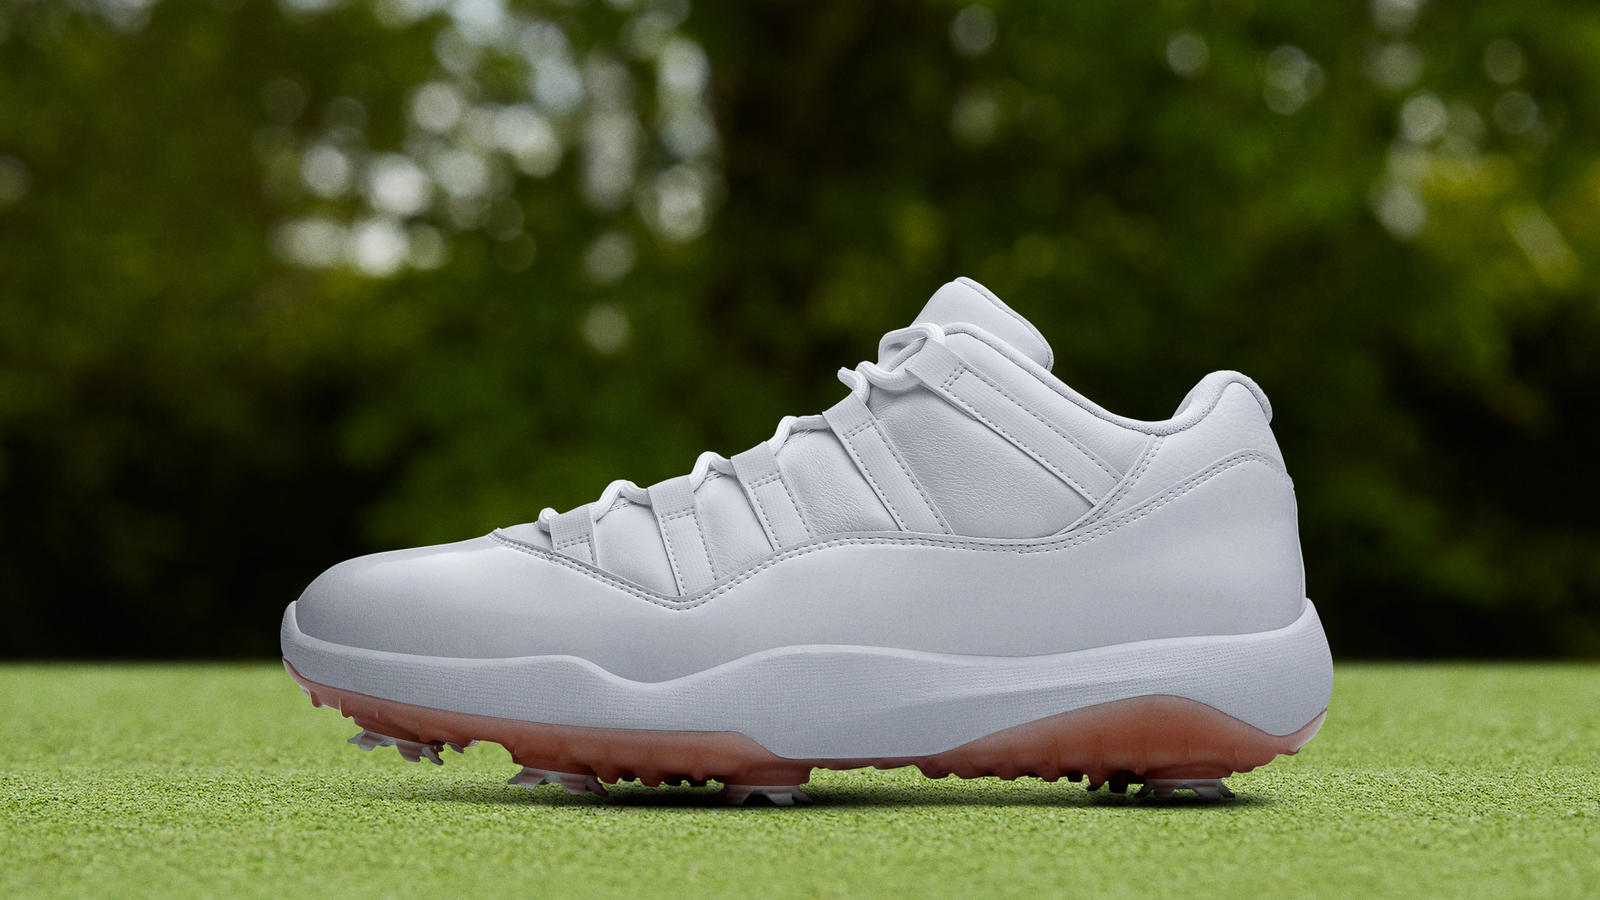 Air Jordan 11 Low Golf Official Image and Release Date 0